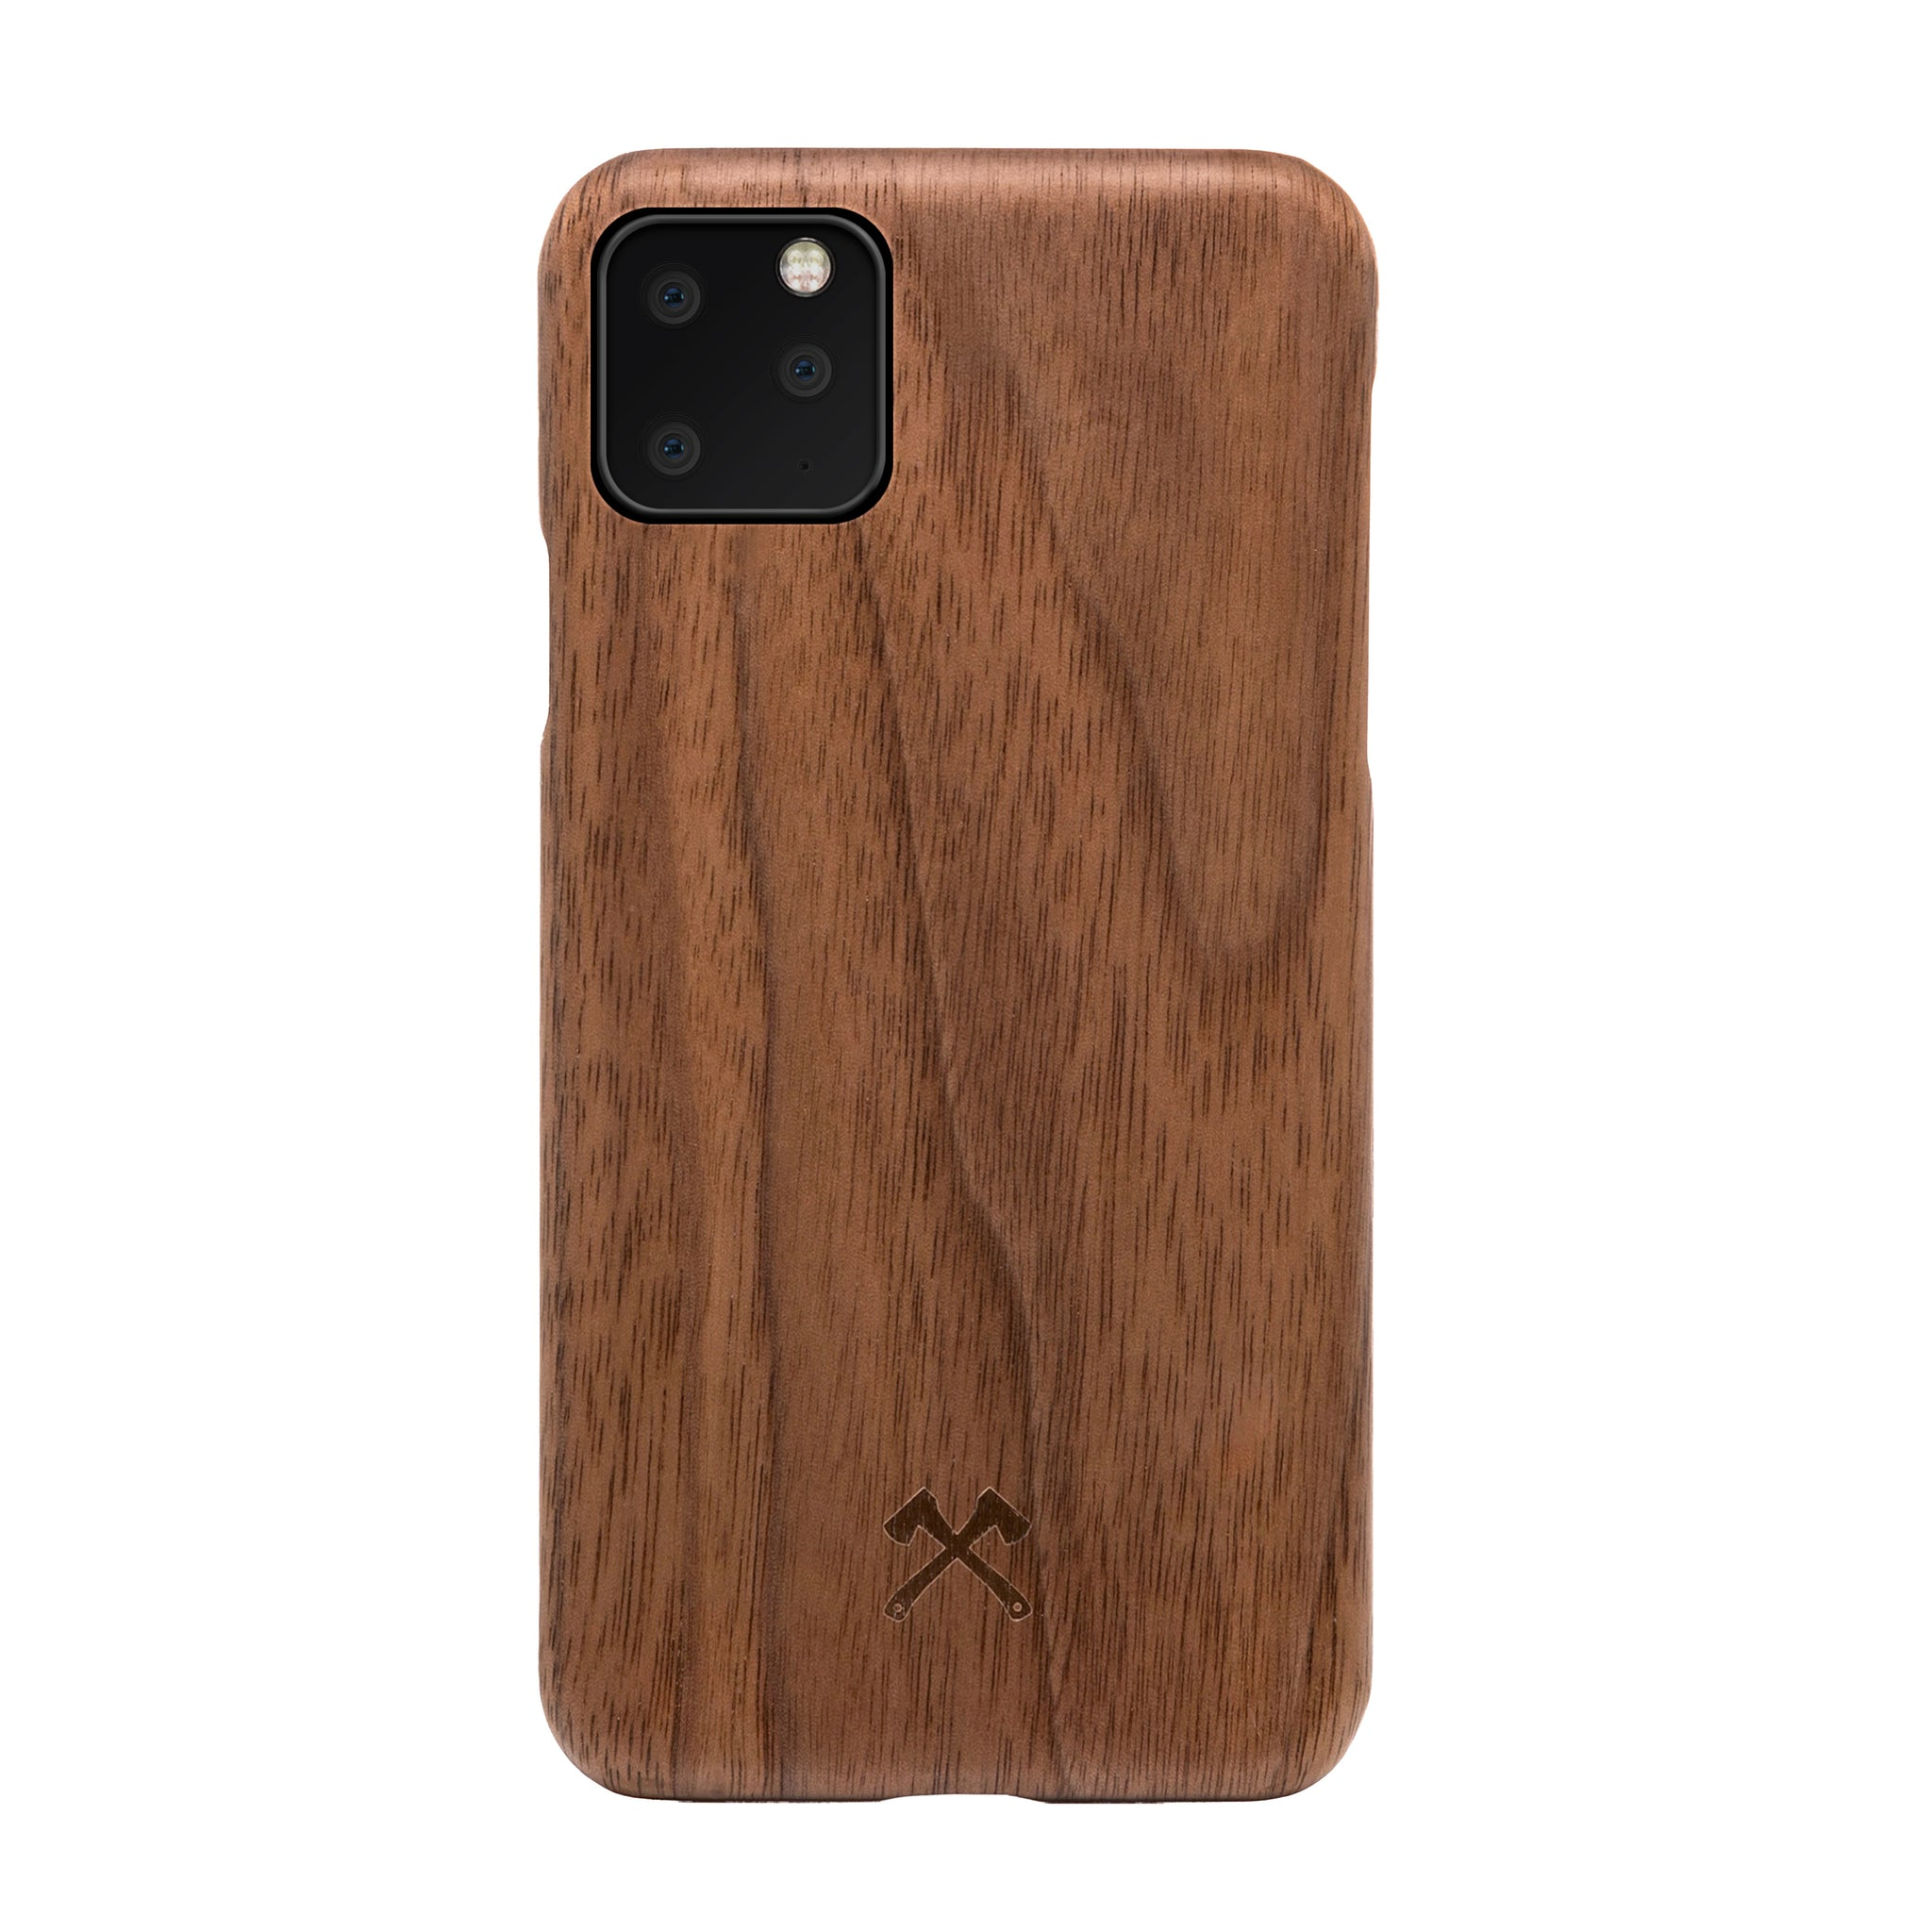 Woodcessories EcoCase Slim for iPhone 11 Pro Max